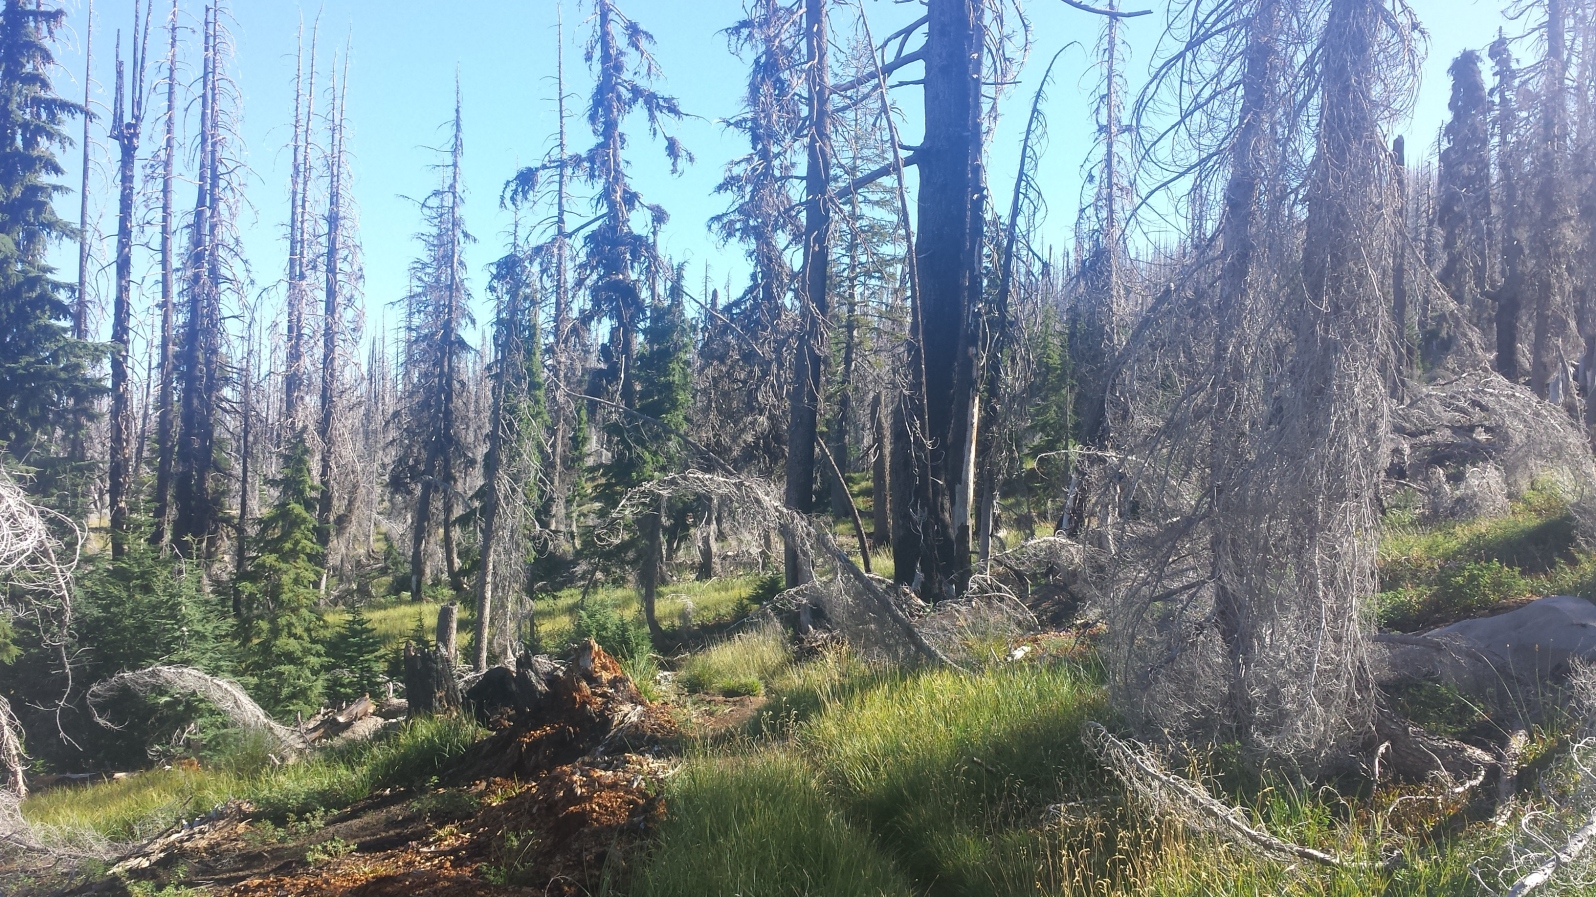 Skeletal Trees before Crater Lake created by a past fire.